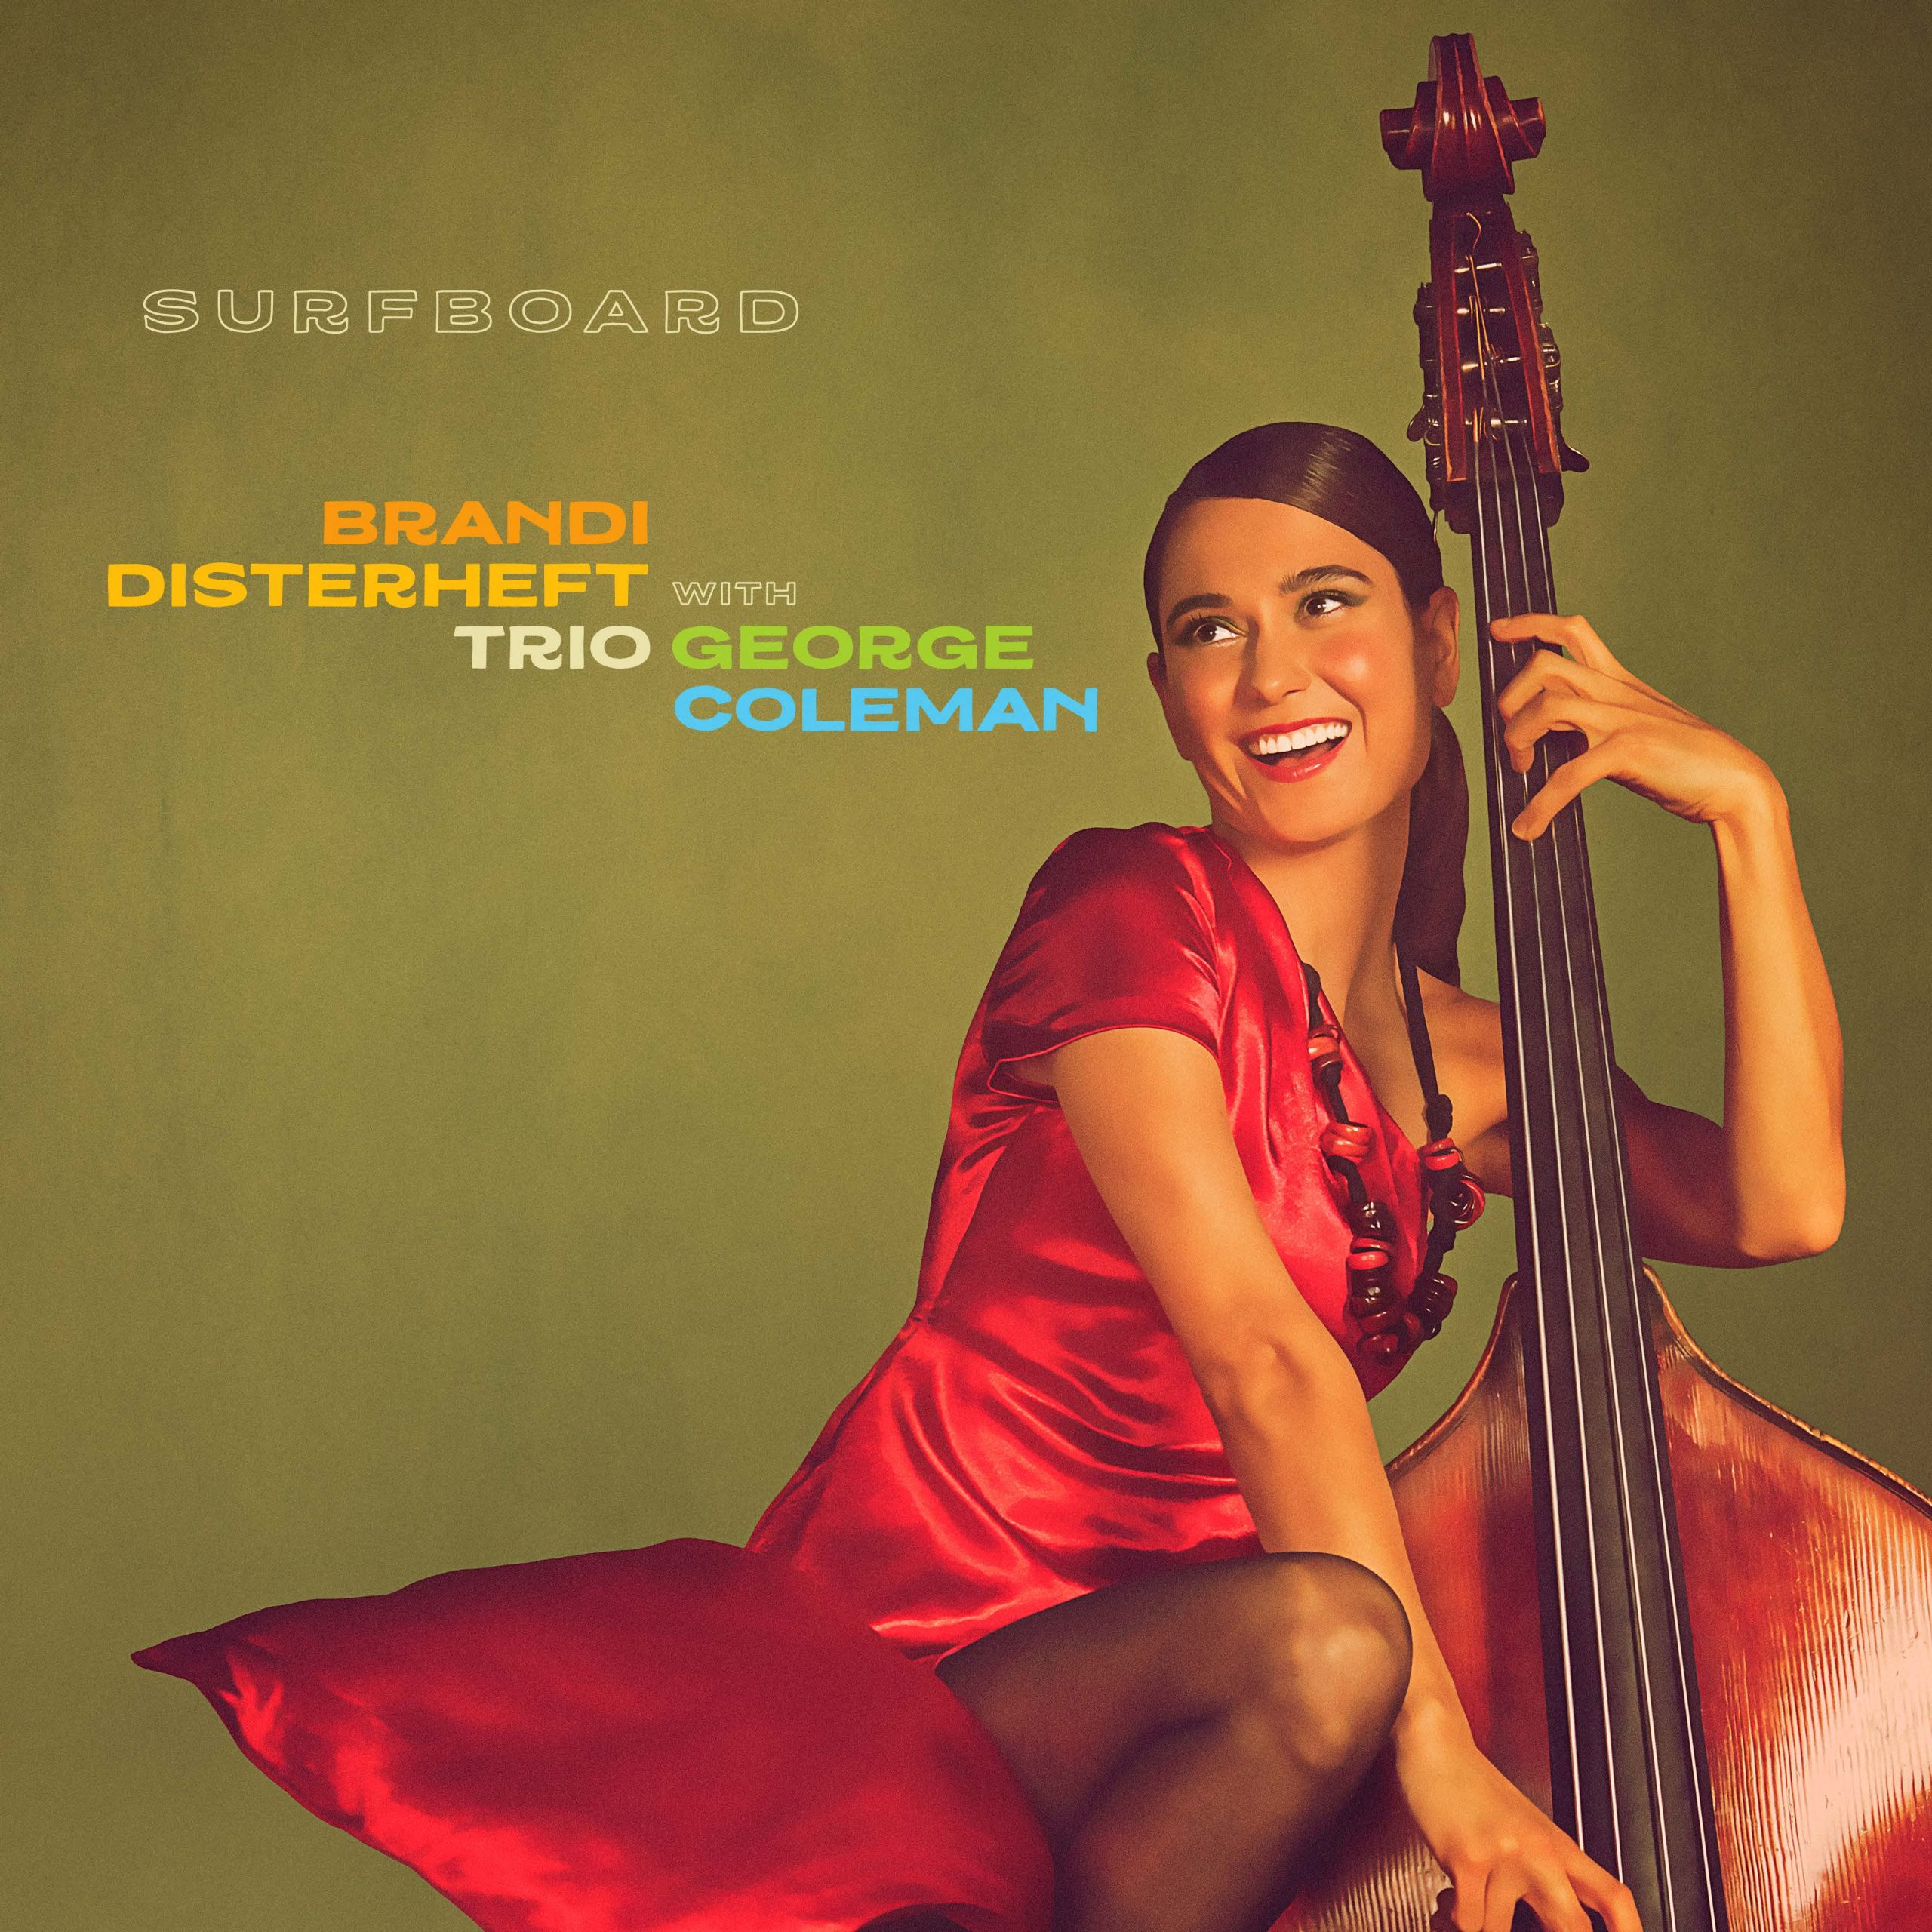 FEATURE: Brandi Disterheft talks new album Surfboard: 'It's very special' – Jazz.FM91